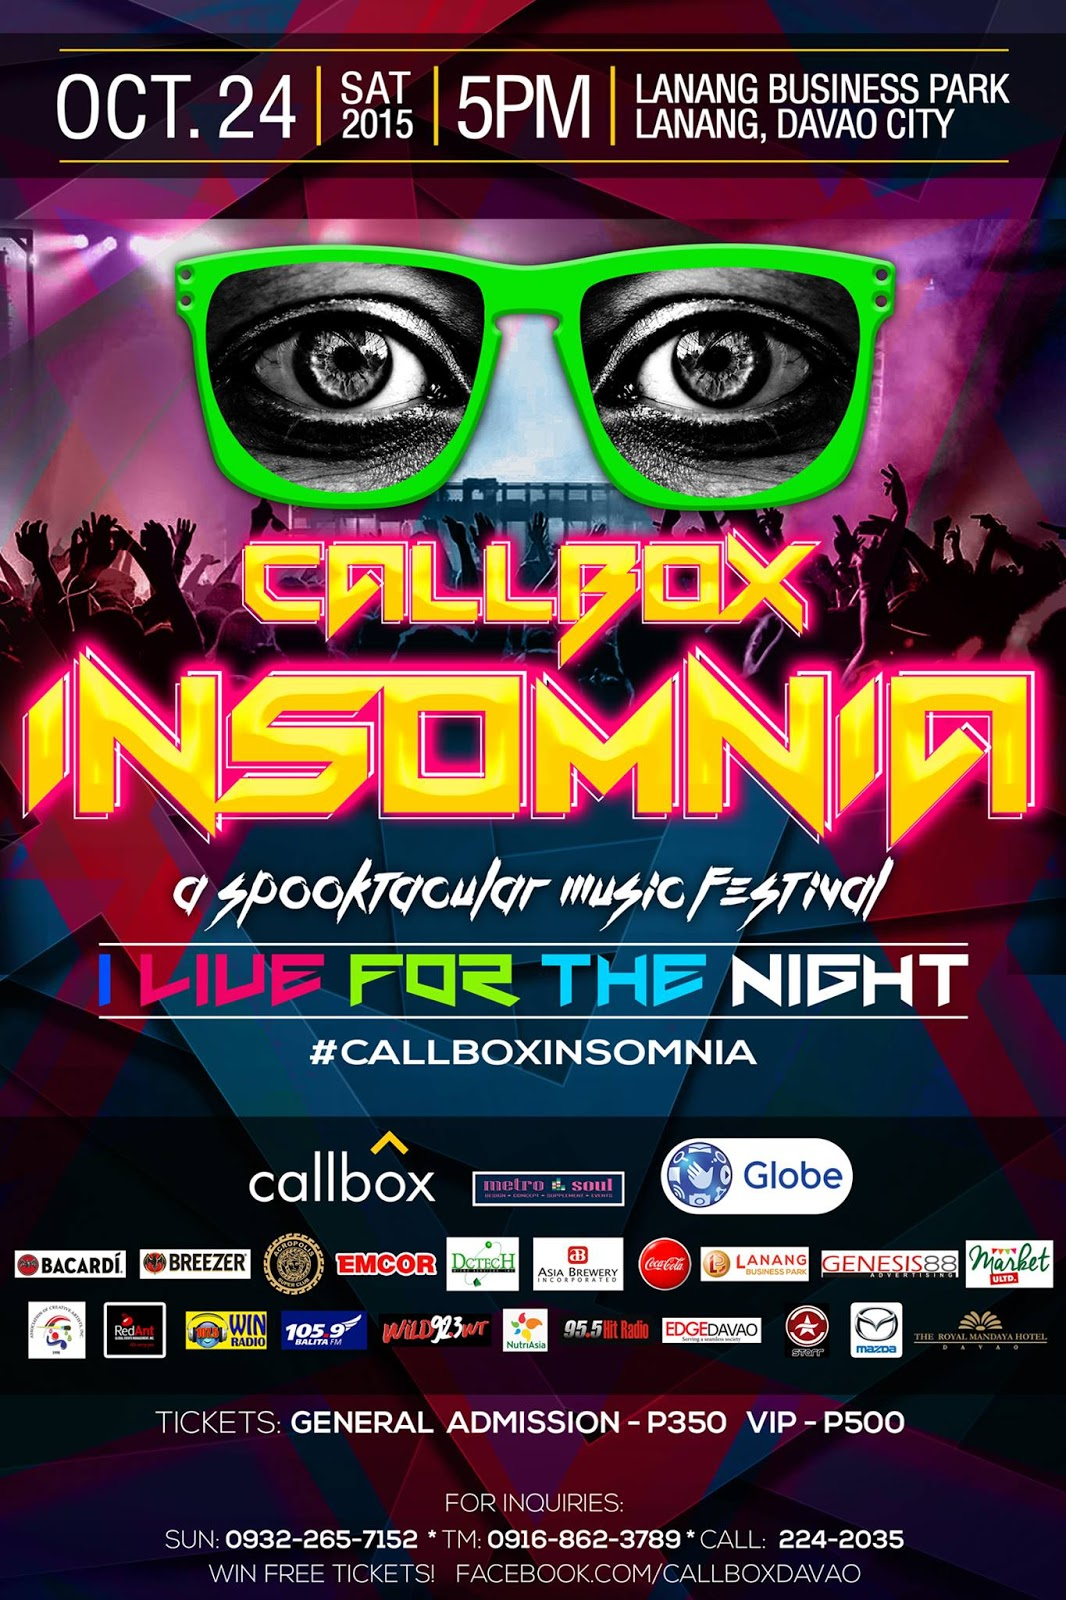 Callbox Insomnia 2015 : What to bring? + VIP ticket giveaway